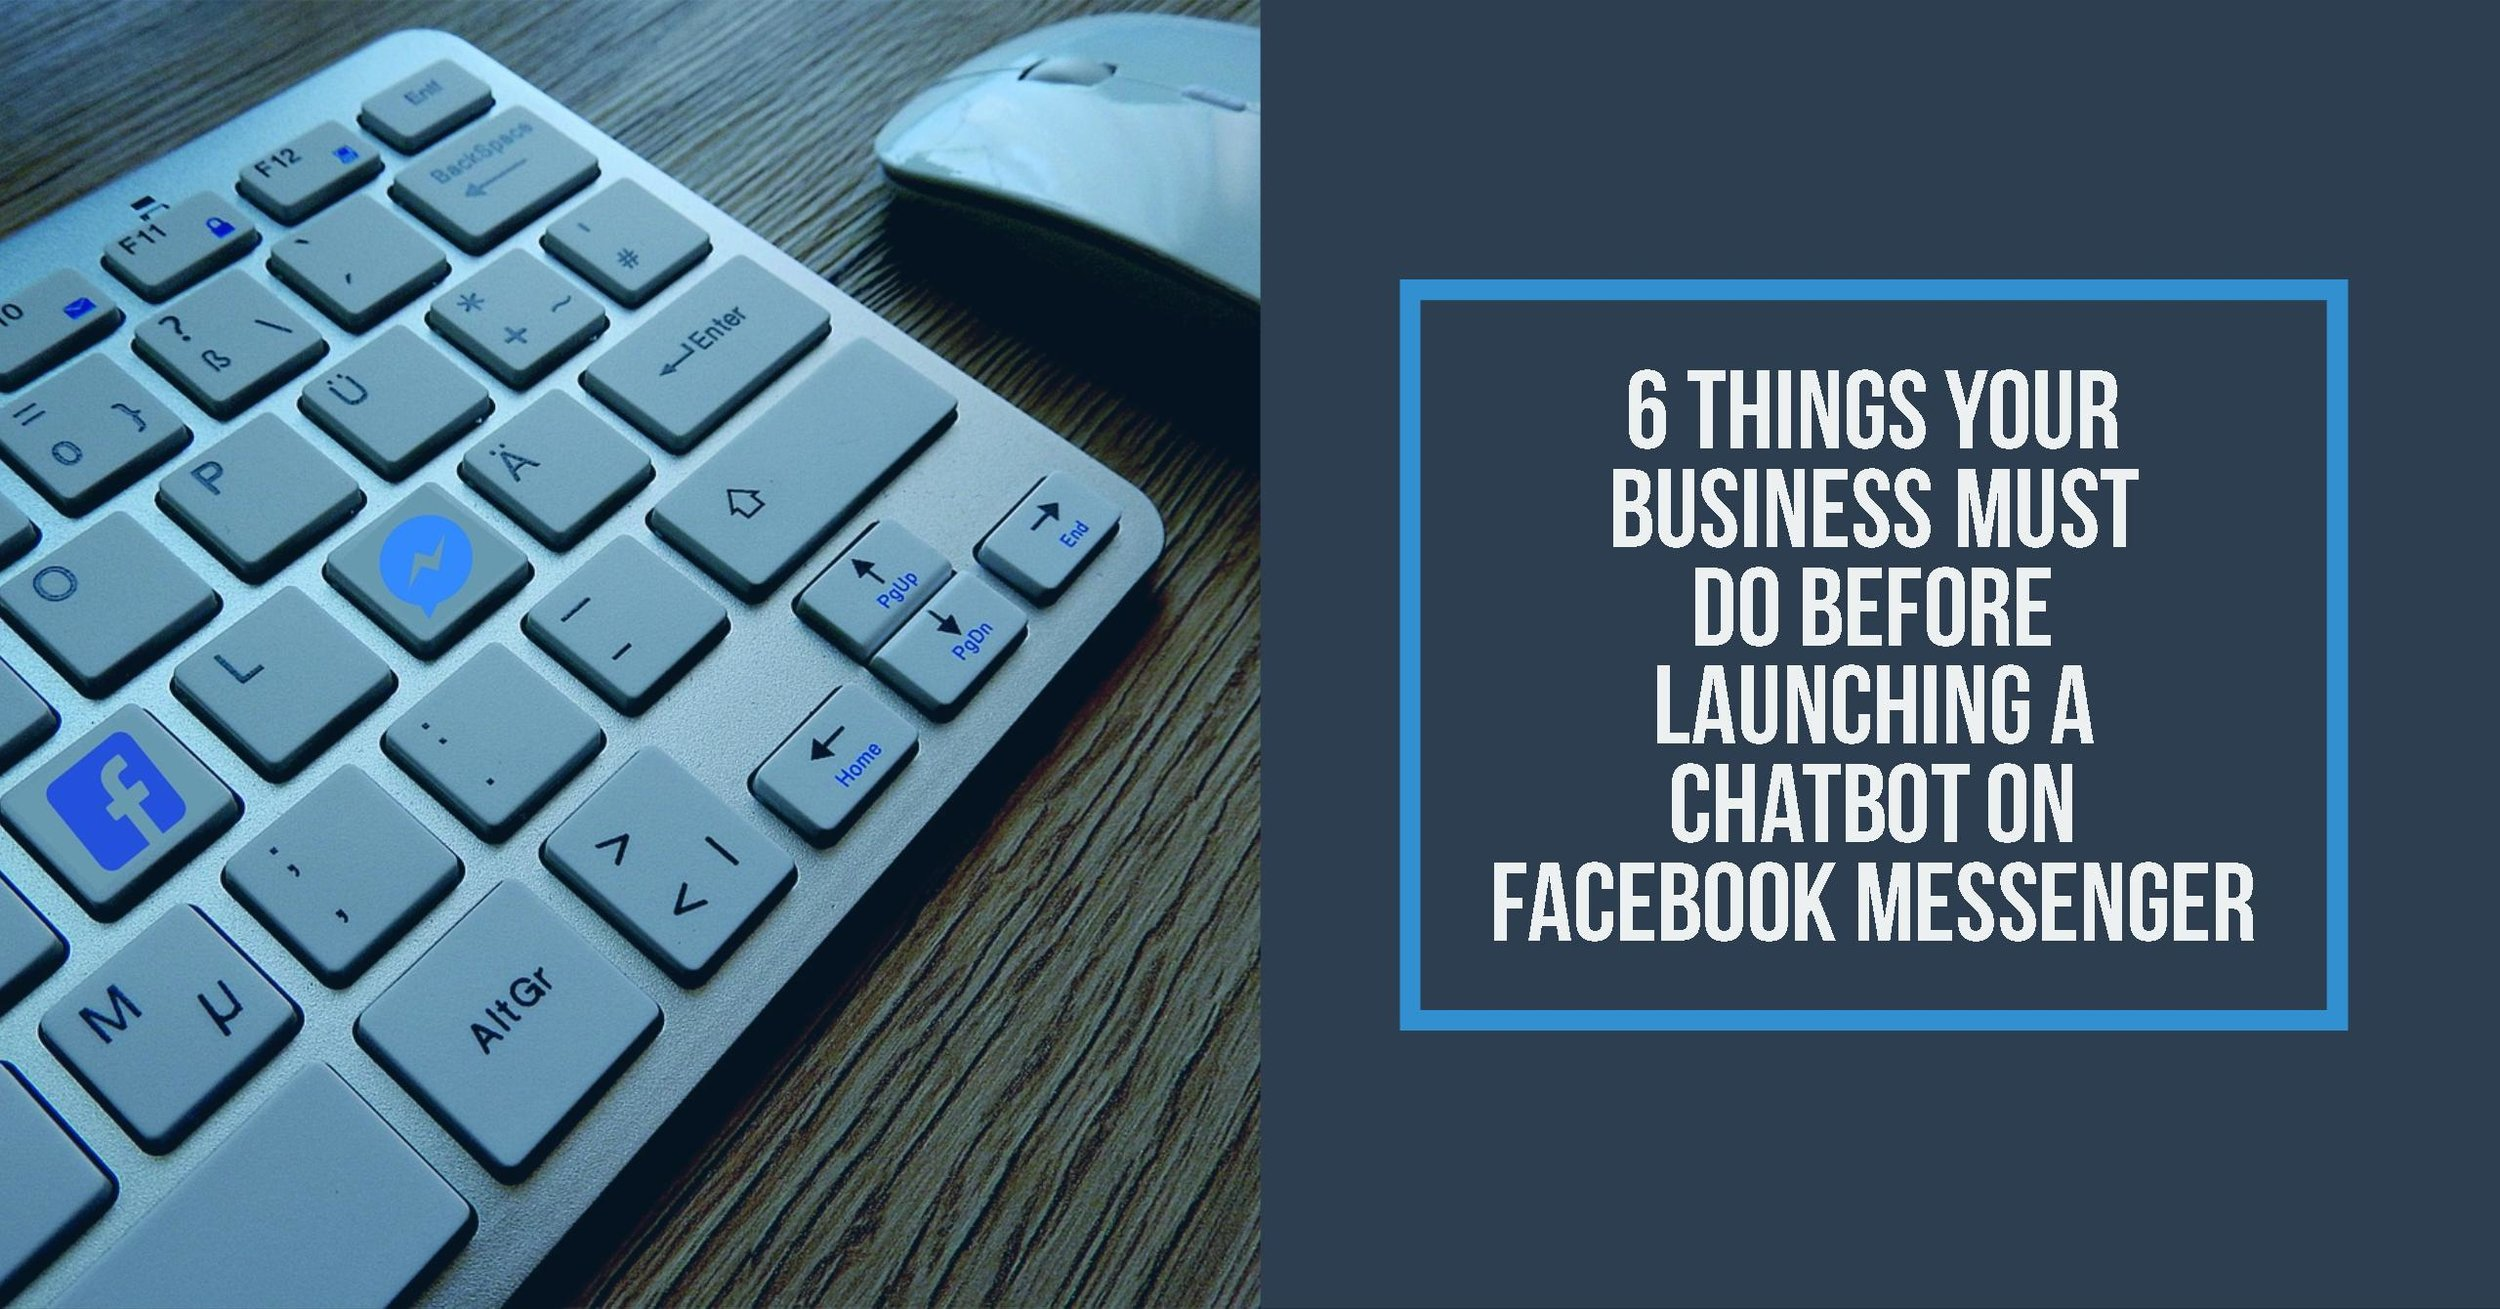 6 Things Your Business Must Do Before Launching A Chatbot on Facebook Messenger